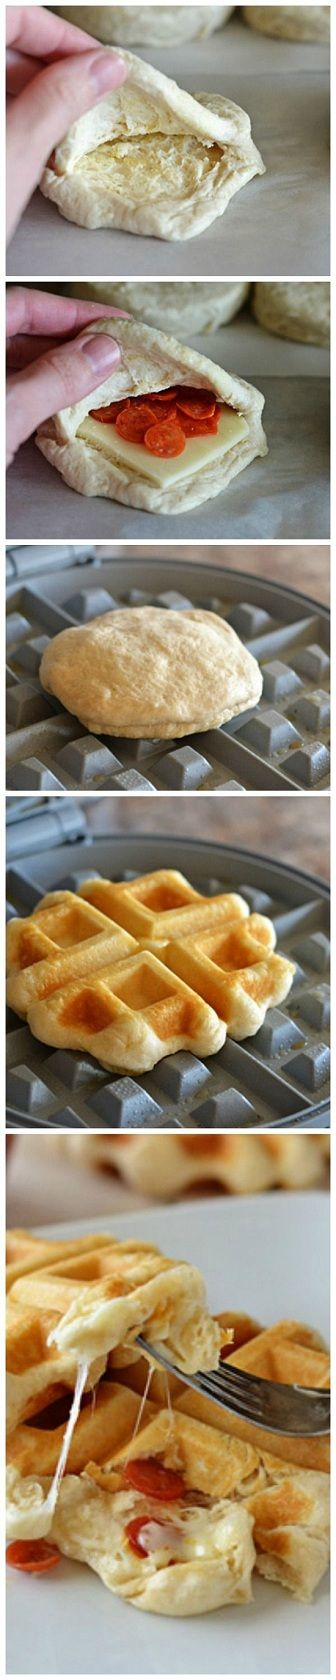 Easy Pizza Waffles Recipe - for pizza night